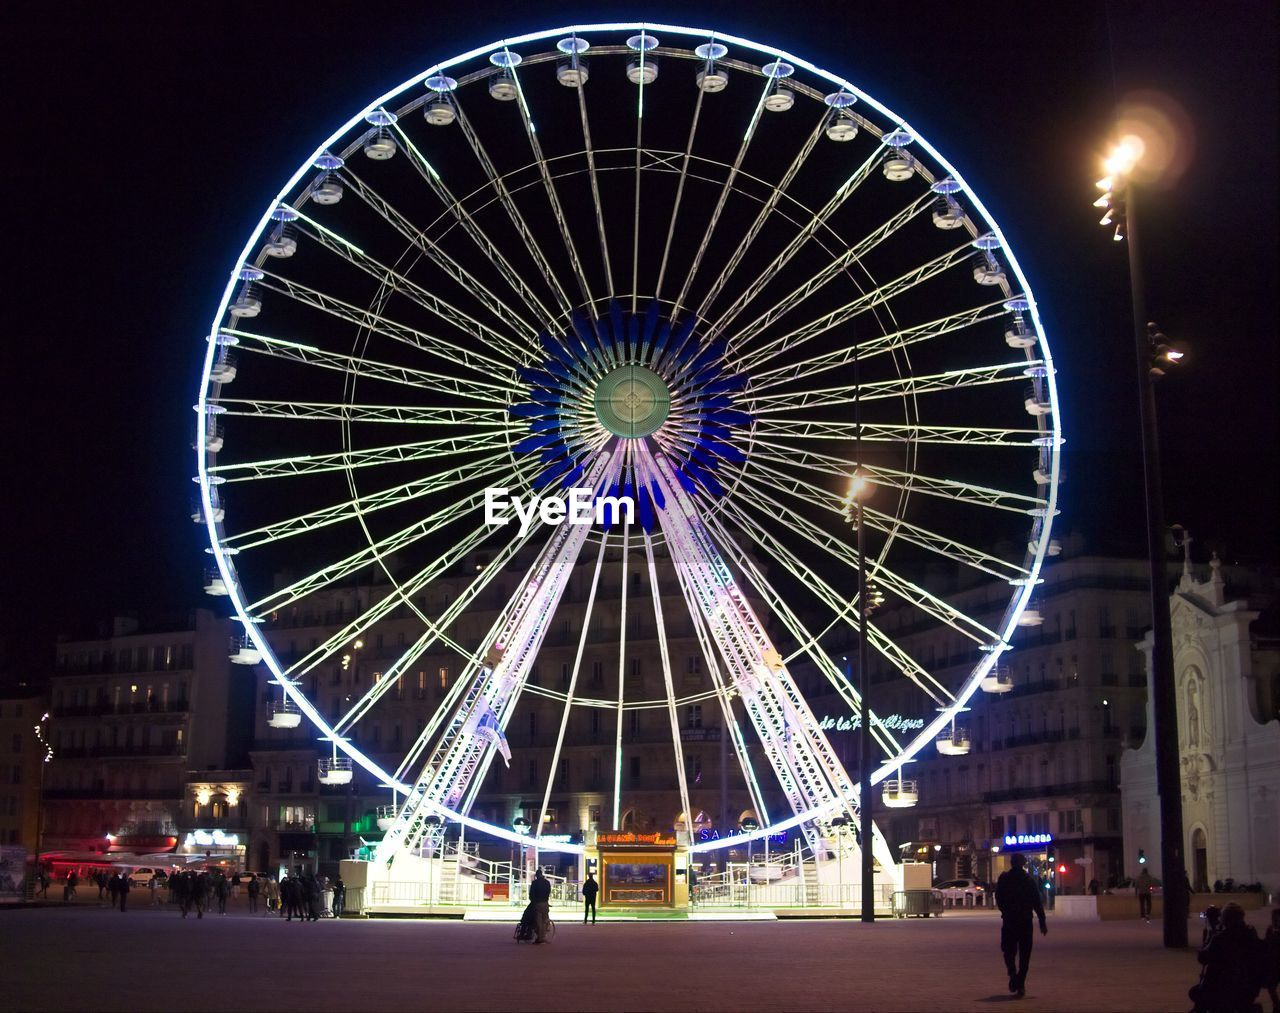 illuminated, night, ferris wheel, arts culture and entertainment, amusement park, leisure activity, built structure, sky, low angle view, clear sky, big wheel, outdoors, architecture, no people